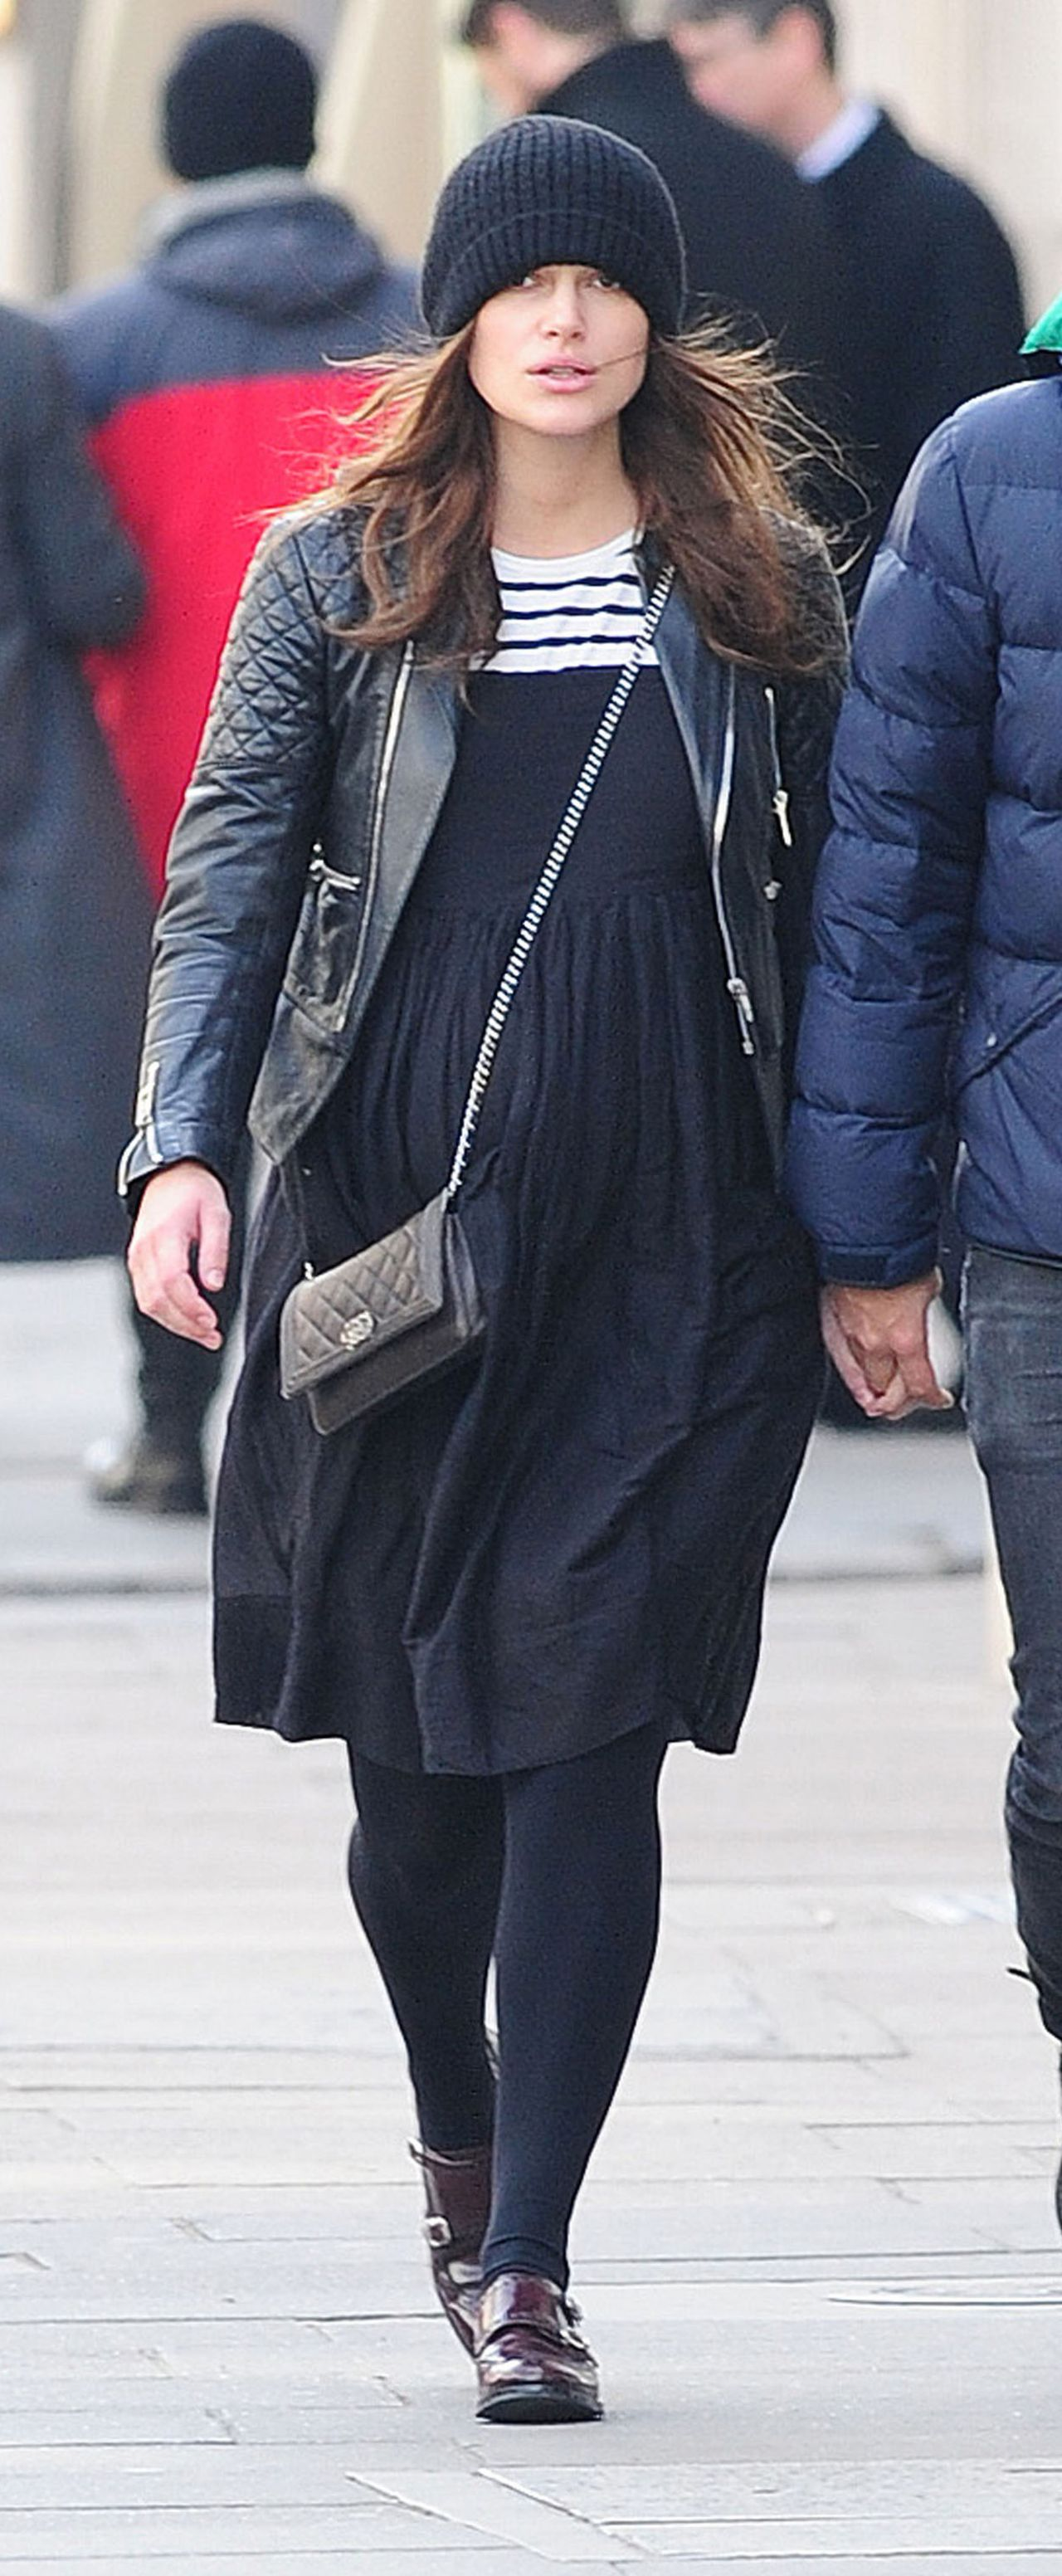 Keira Knightley Out in London - March 2015